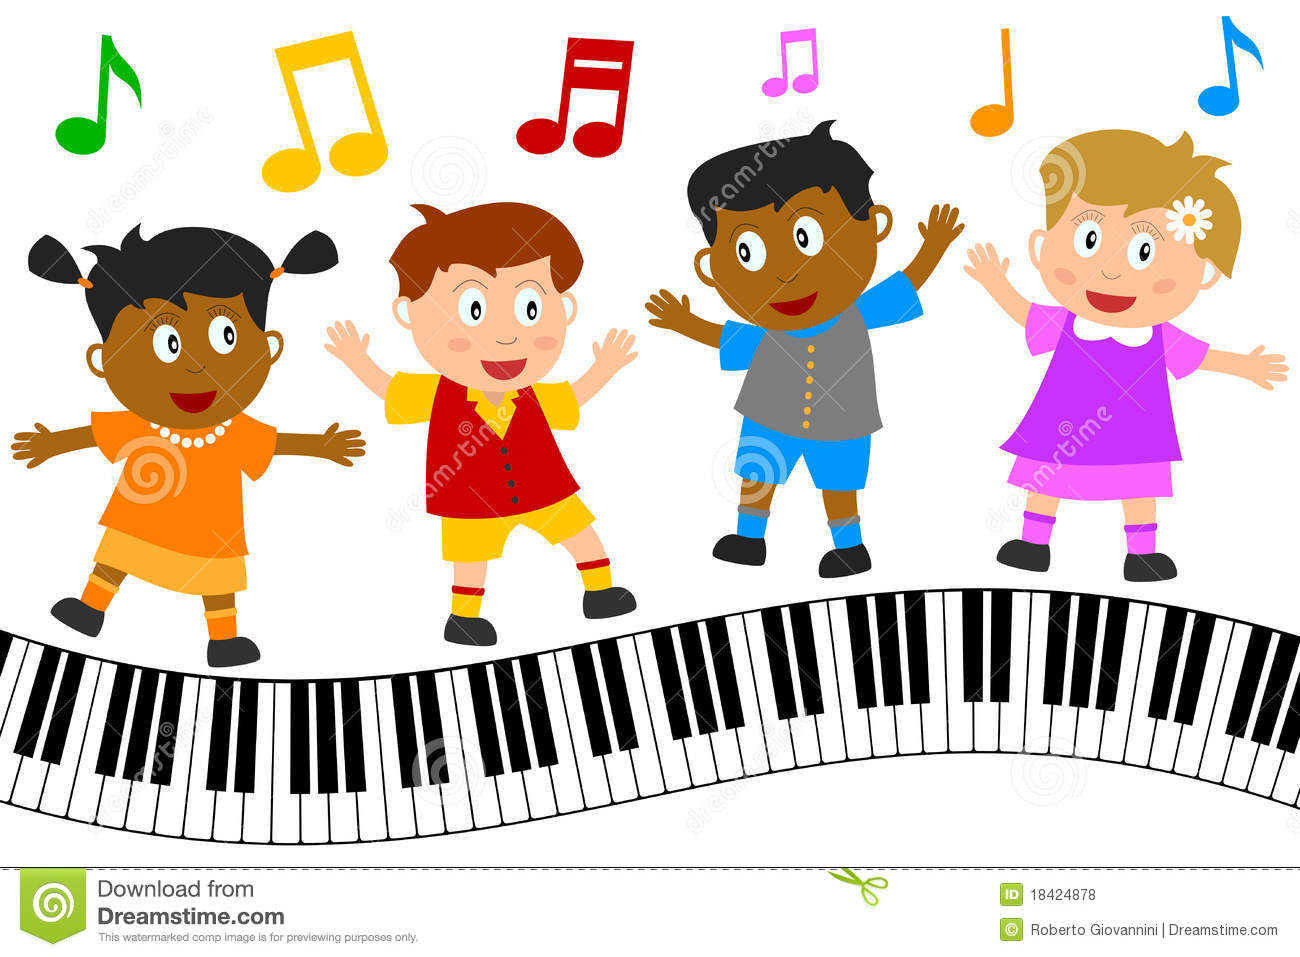 Clipart children sing together clipart transparent library Children Singing Clipart | Free download best Children Singing ... clipart transparent library